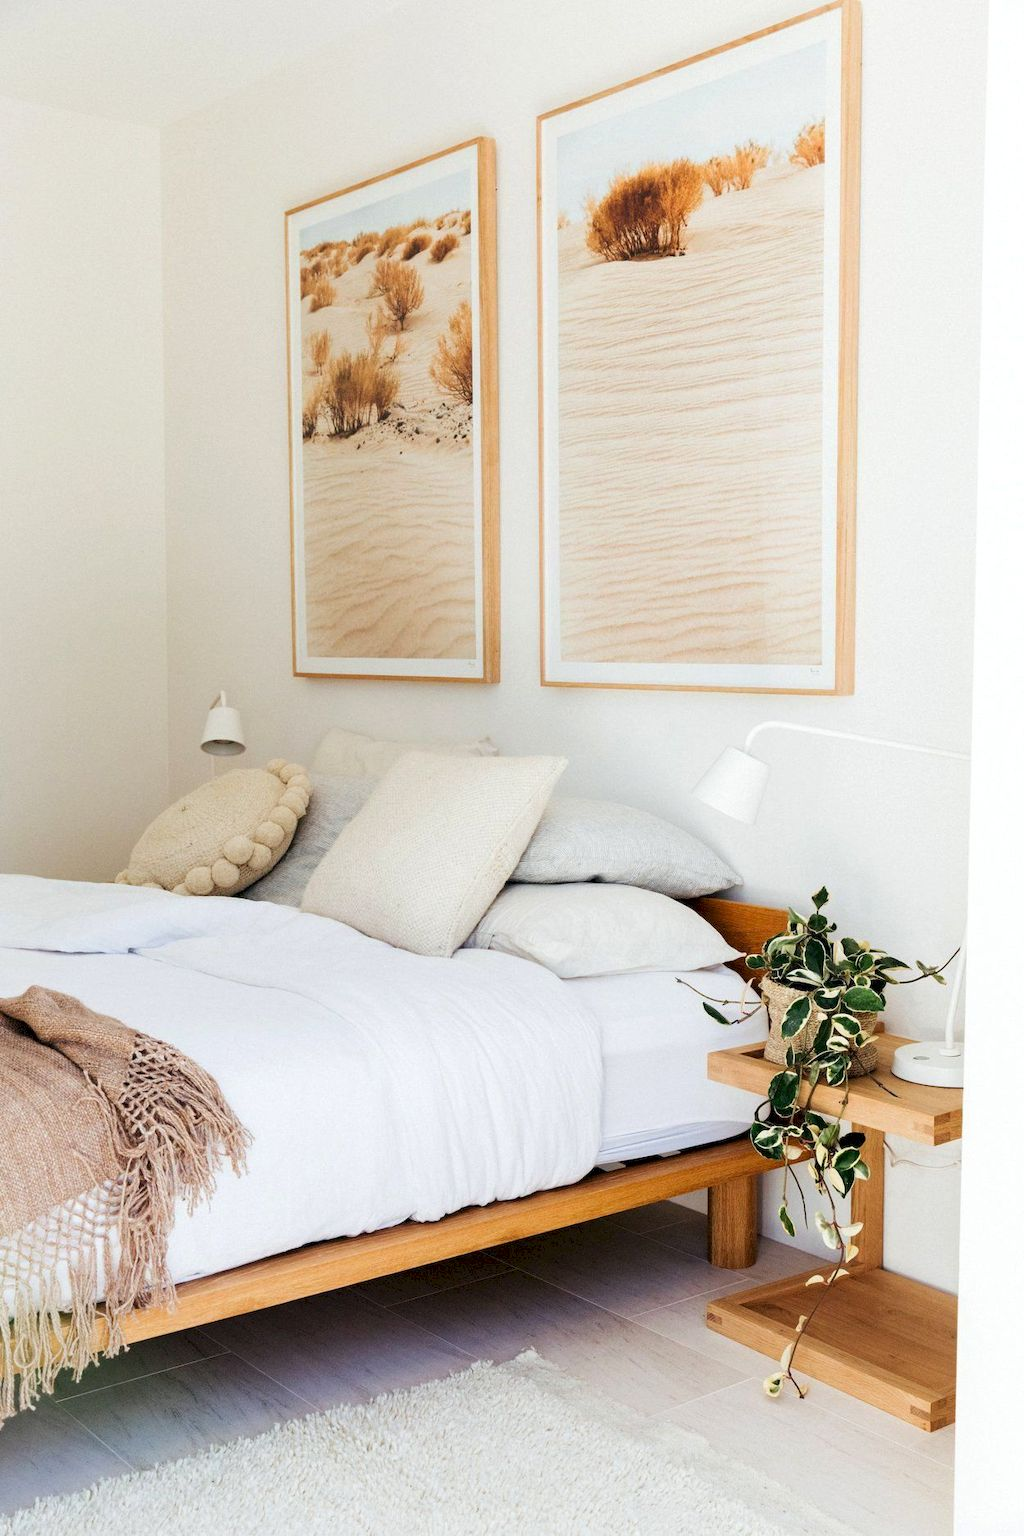 Affordable Bedroom Design With Comfortable Beds and Furniture Part 22